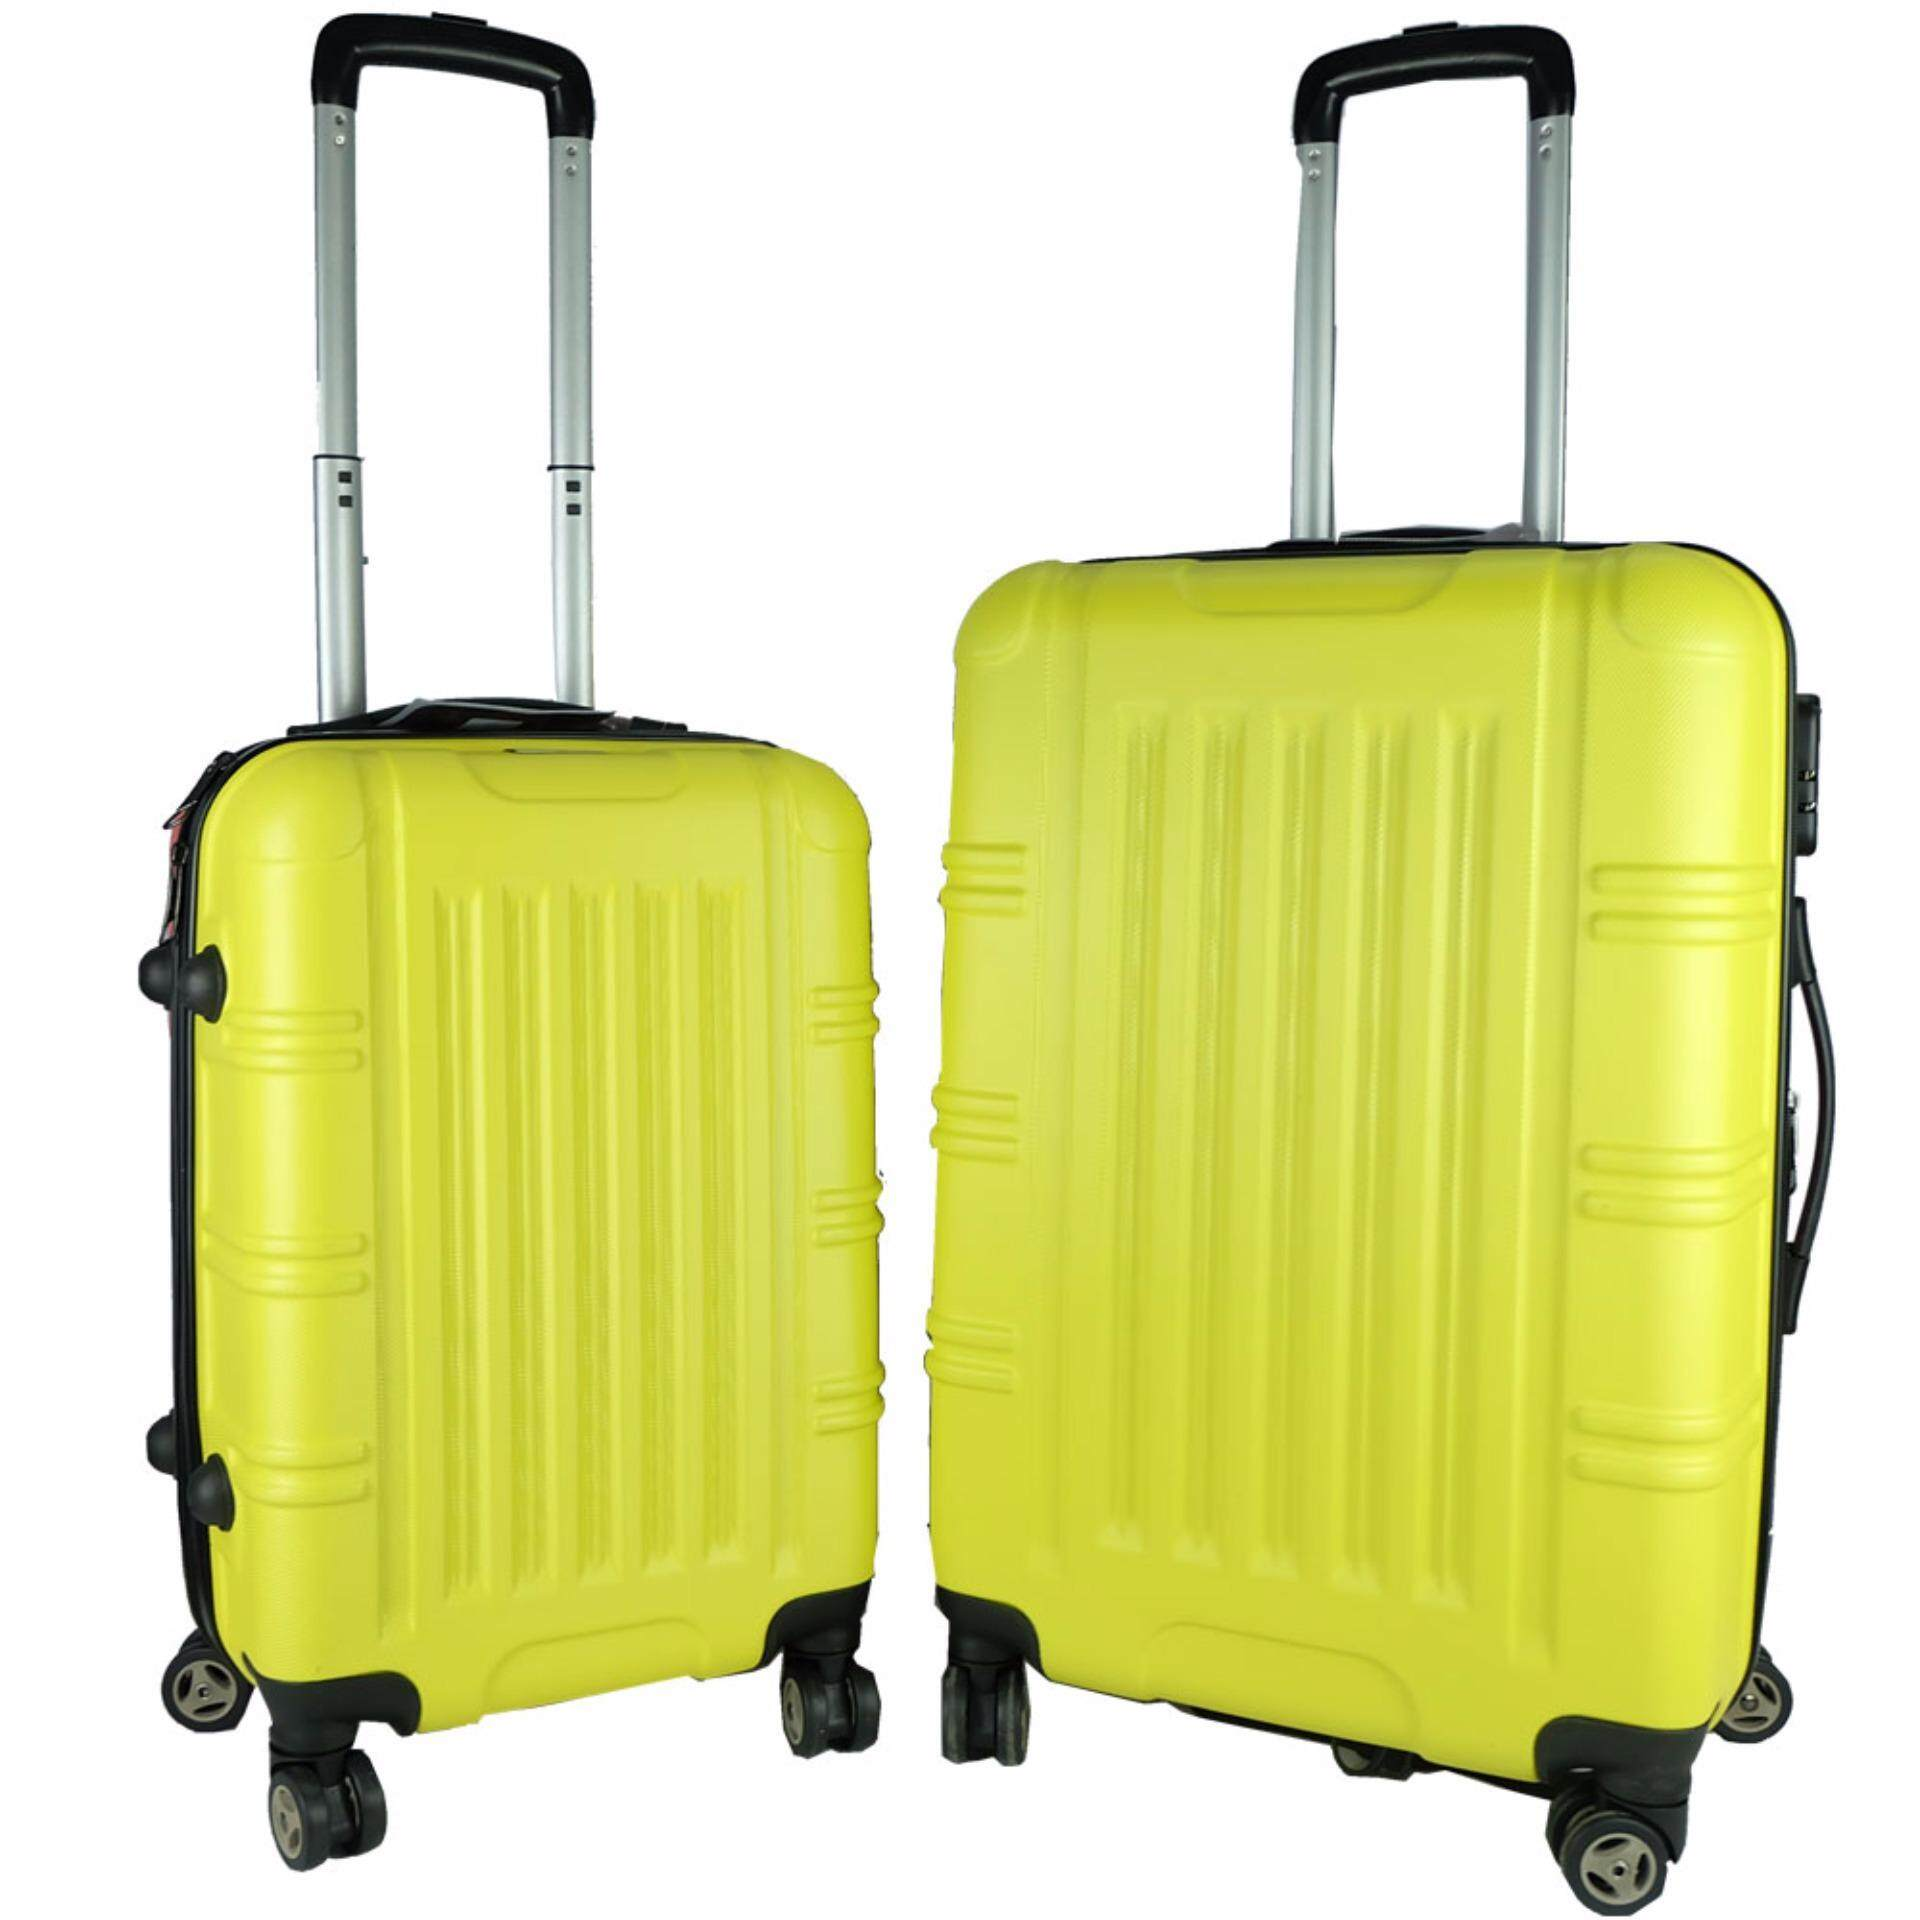 W.POLO Big Stripe 2-in-1 Ultralight Double Color Luggage Set (20inch + 24inch)- Yellow/Red